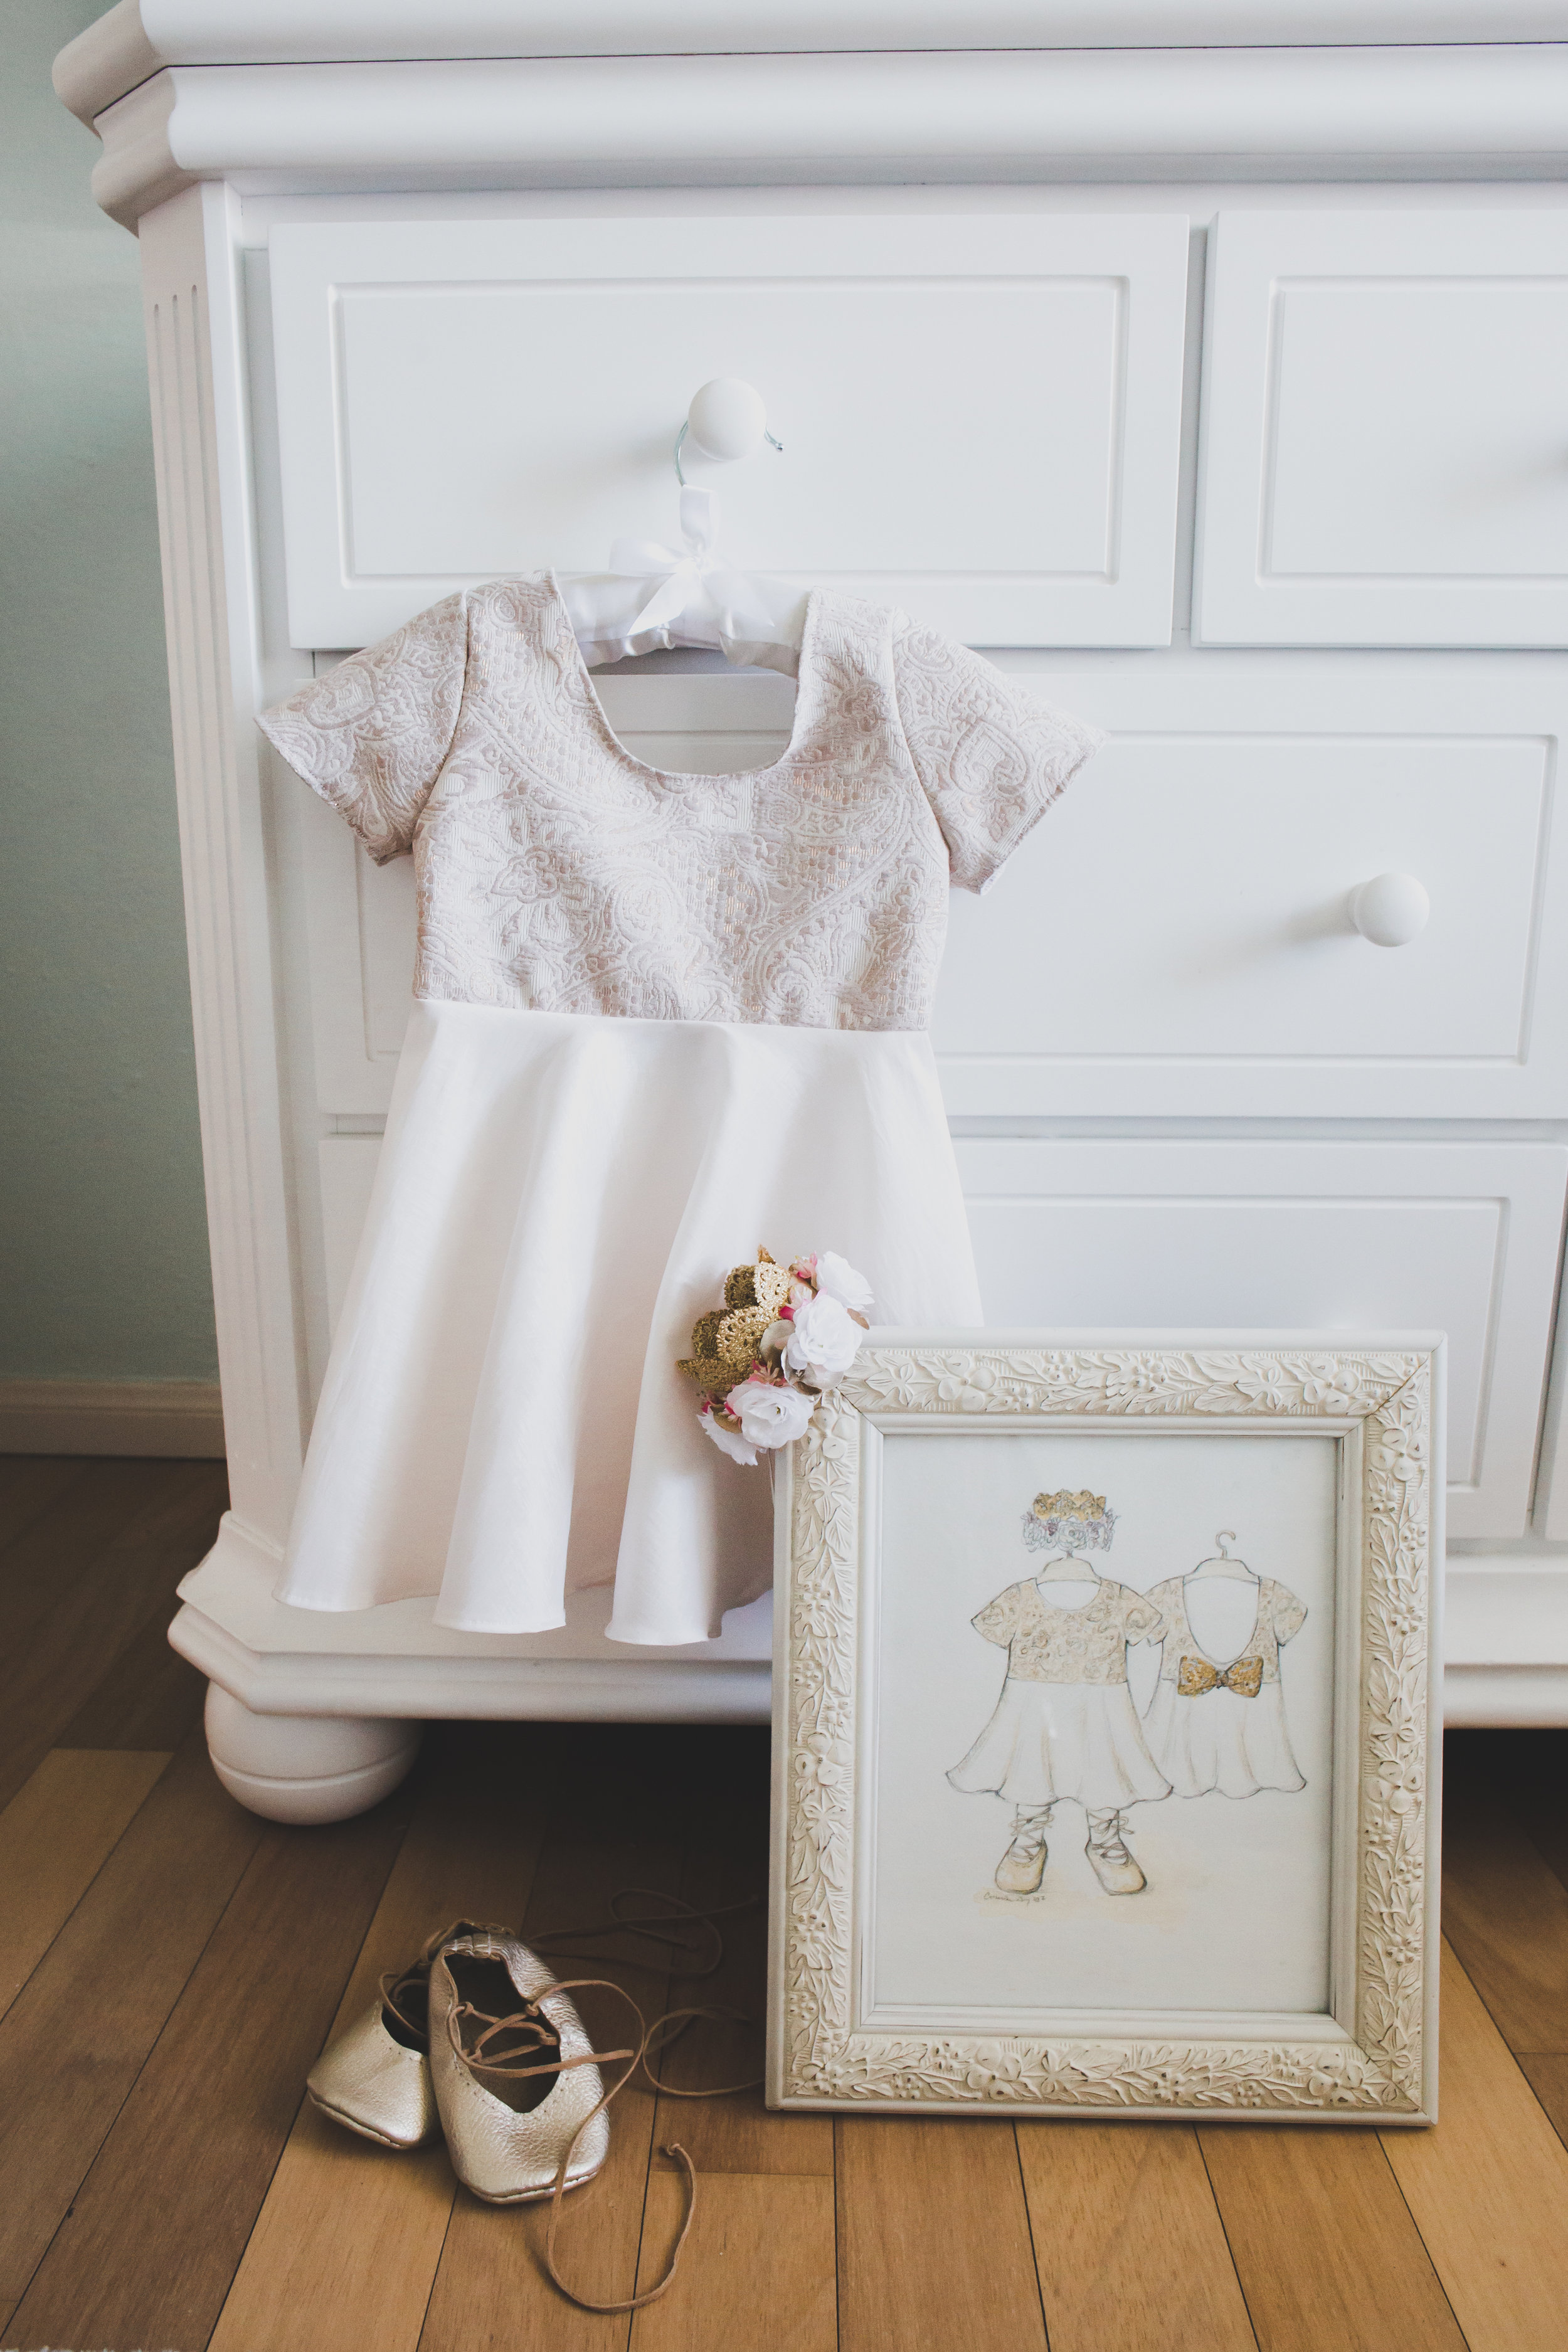 First Birthday Party Dress - A Vintage Chic Pi Day Themed 1st Birthday Party